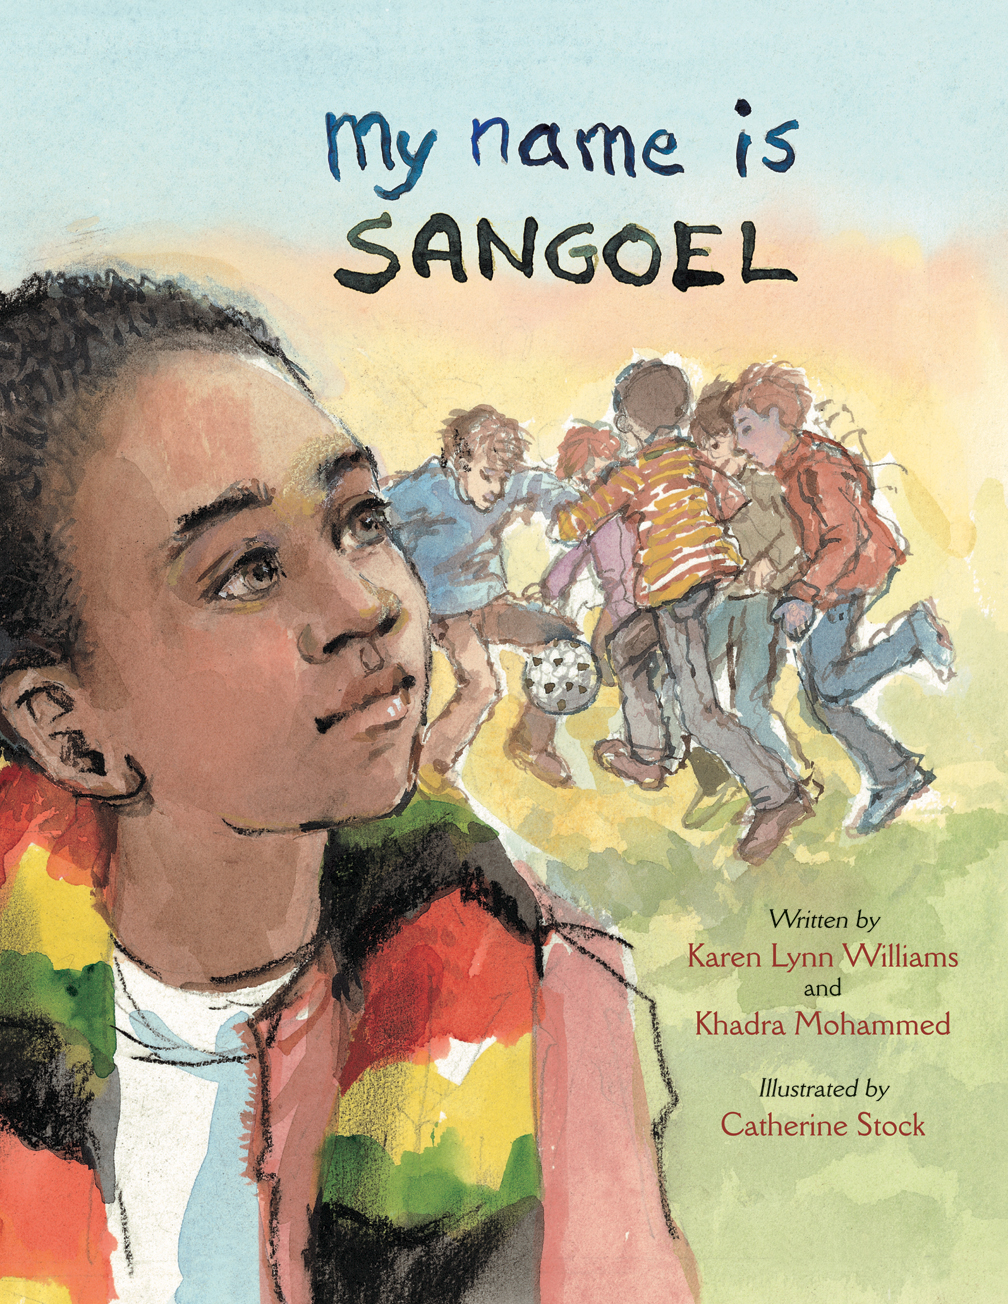 My Name is Sangoel, by Karen Lynn Williams and Khadra Mohammed